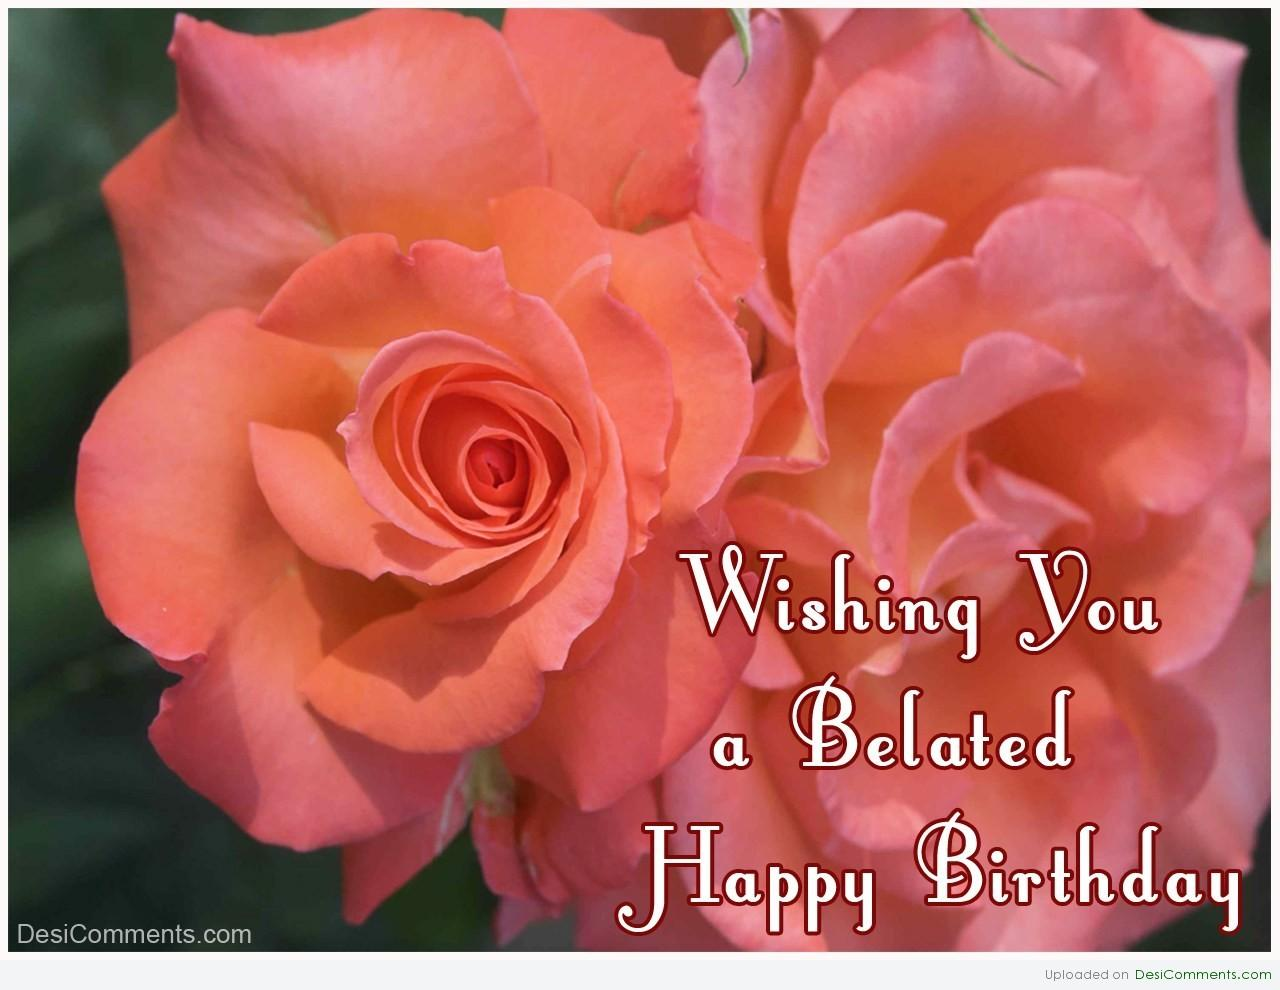 Wishing You A Belated Happy Birthday Desicomments Com